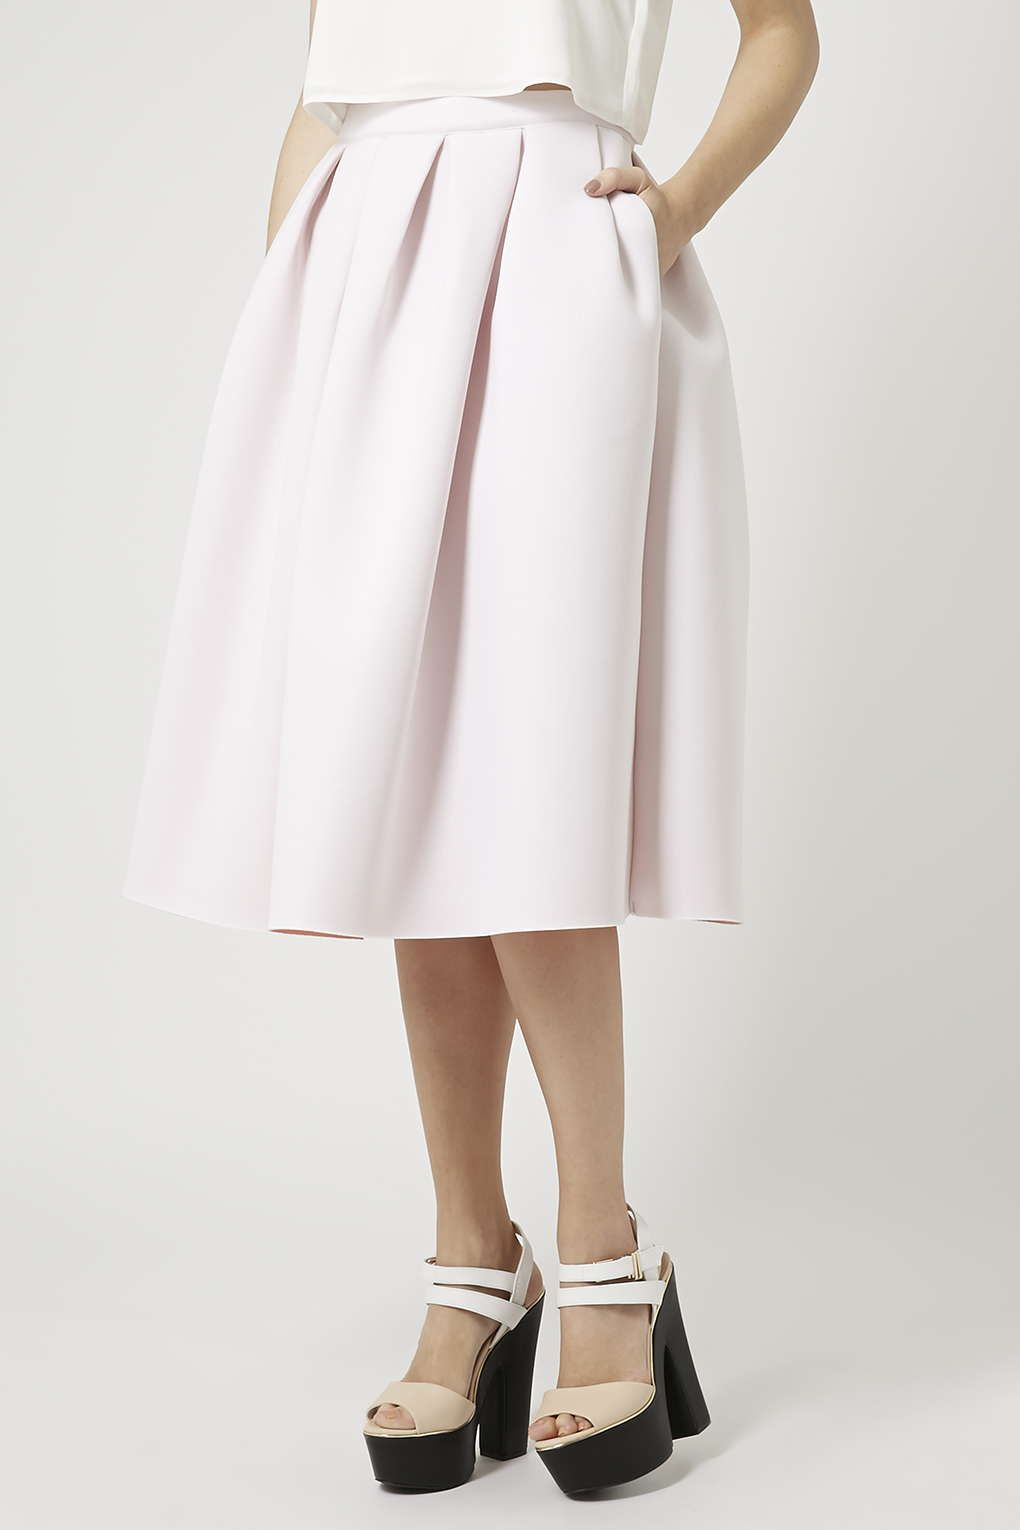 Jersey A-Line Midi Skirt - Skirts - Clothing | Pink, Shades and ...